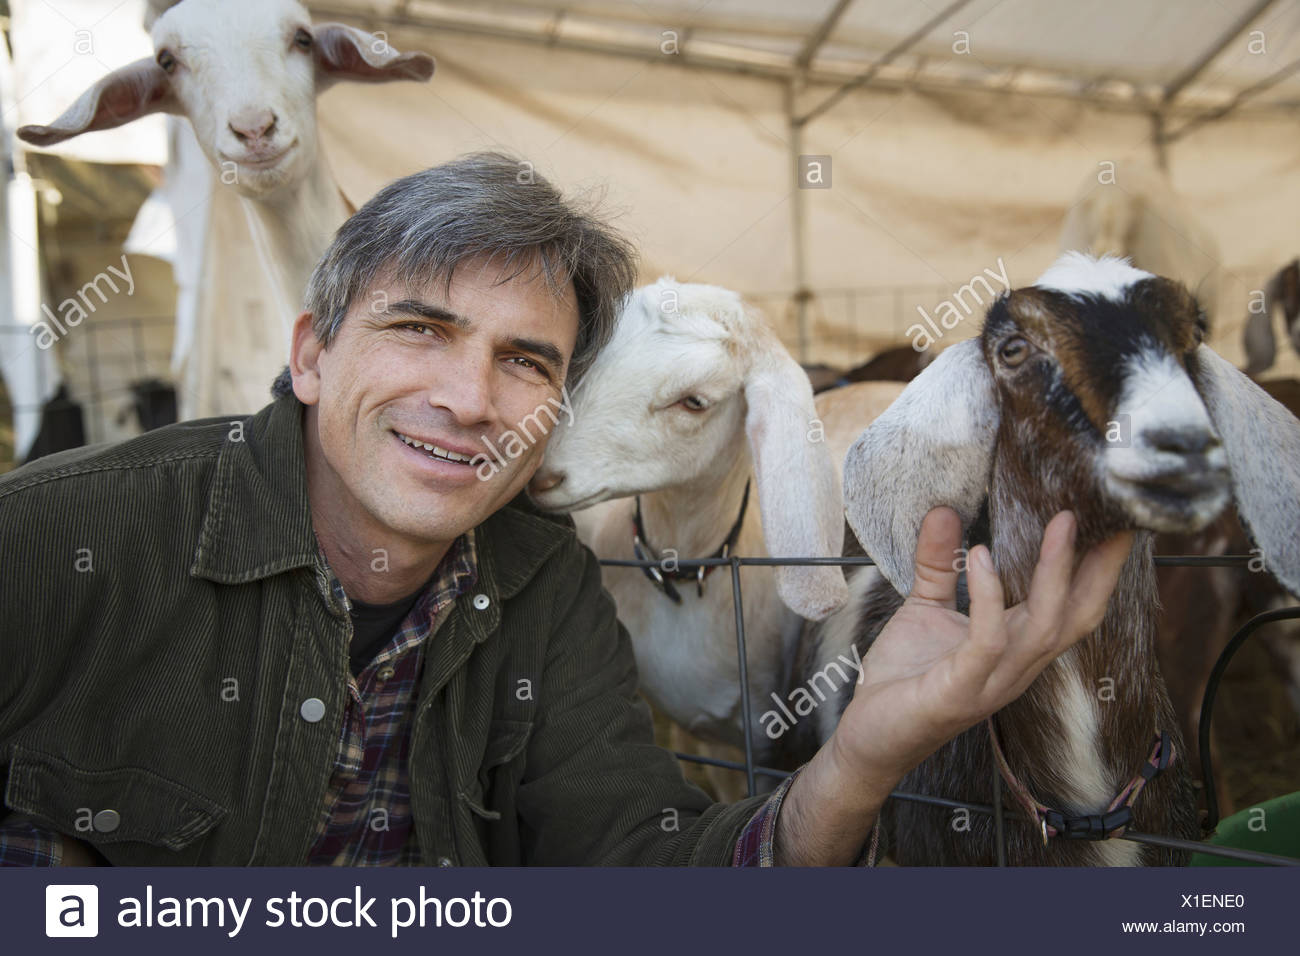 A man with a group of goats in a pen Livestock farming Goats kept for meat and milk - Stock Image